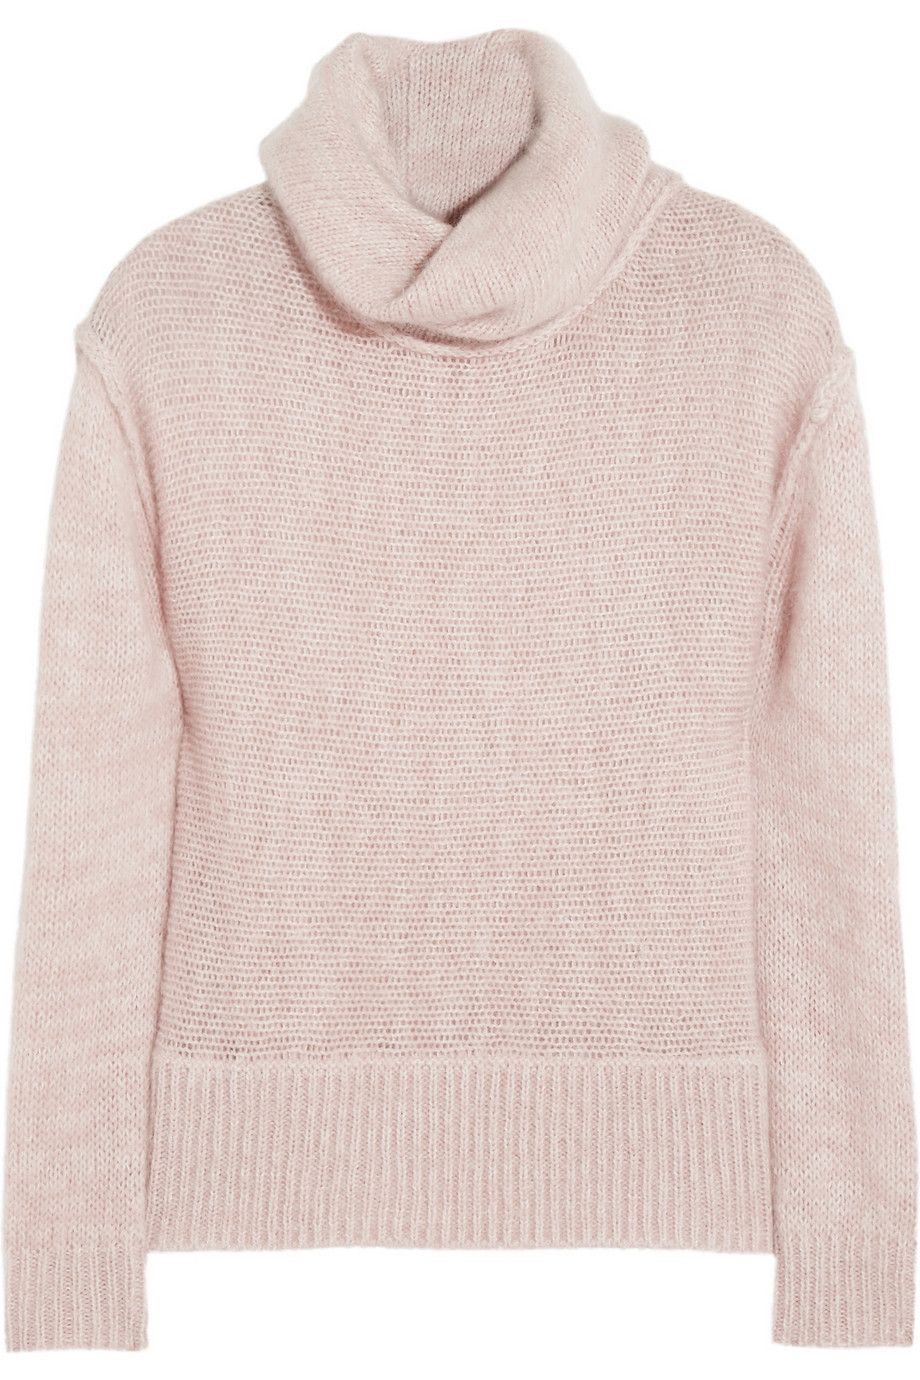 Duffy | Knitted turtleneck sweater | NET-A-PORTER.COM | I Want IT ...